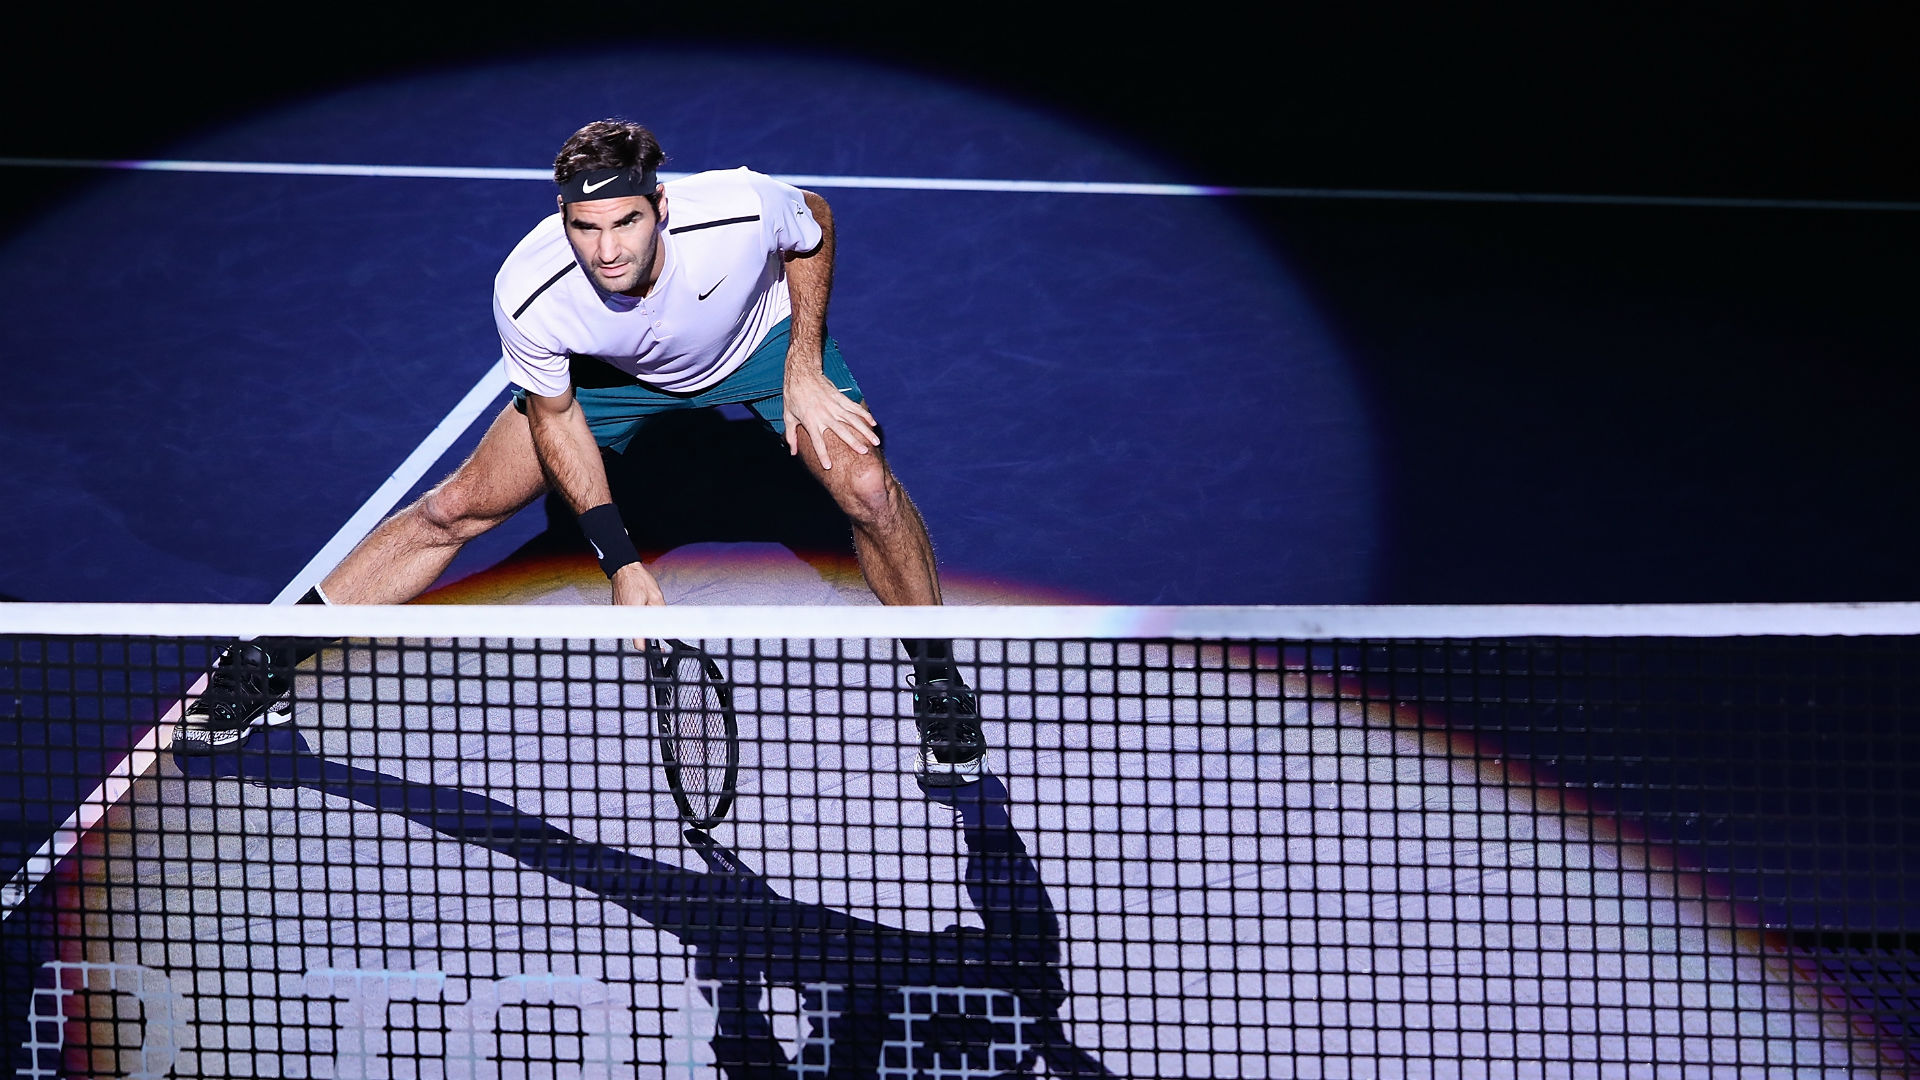 Roger Federer continues dominance over Rafael Nadal in Shanghai Masters final